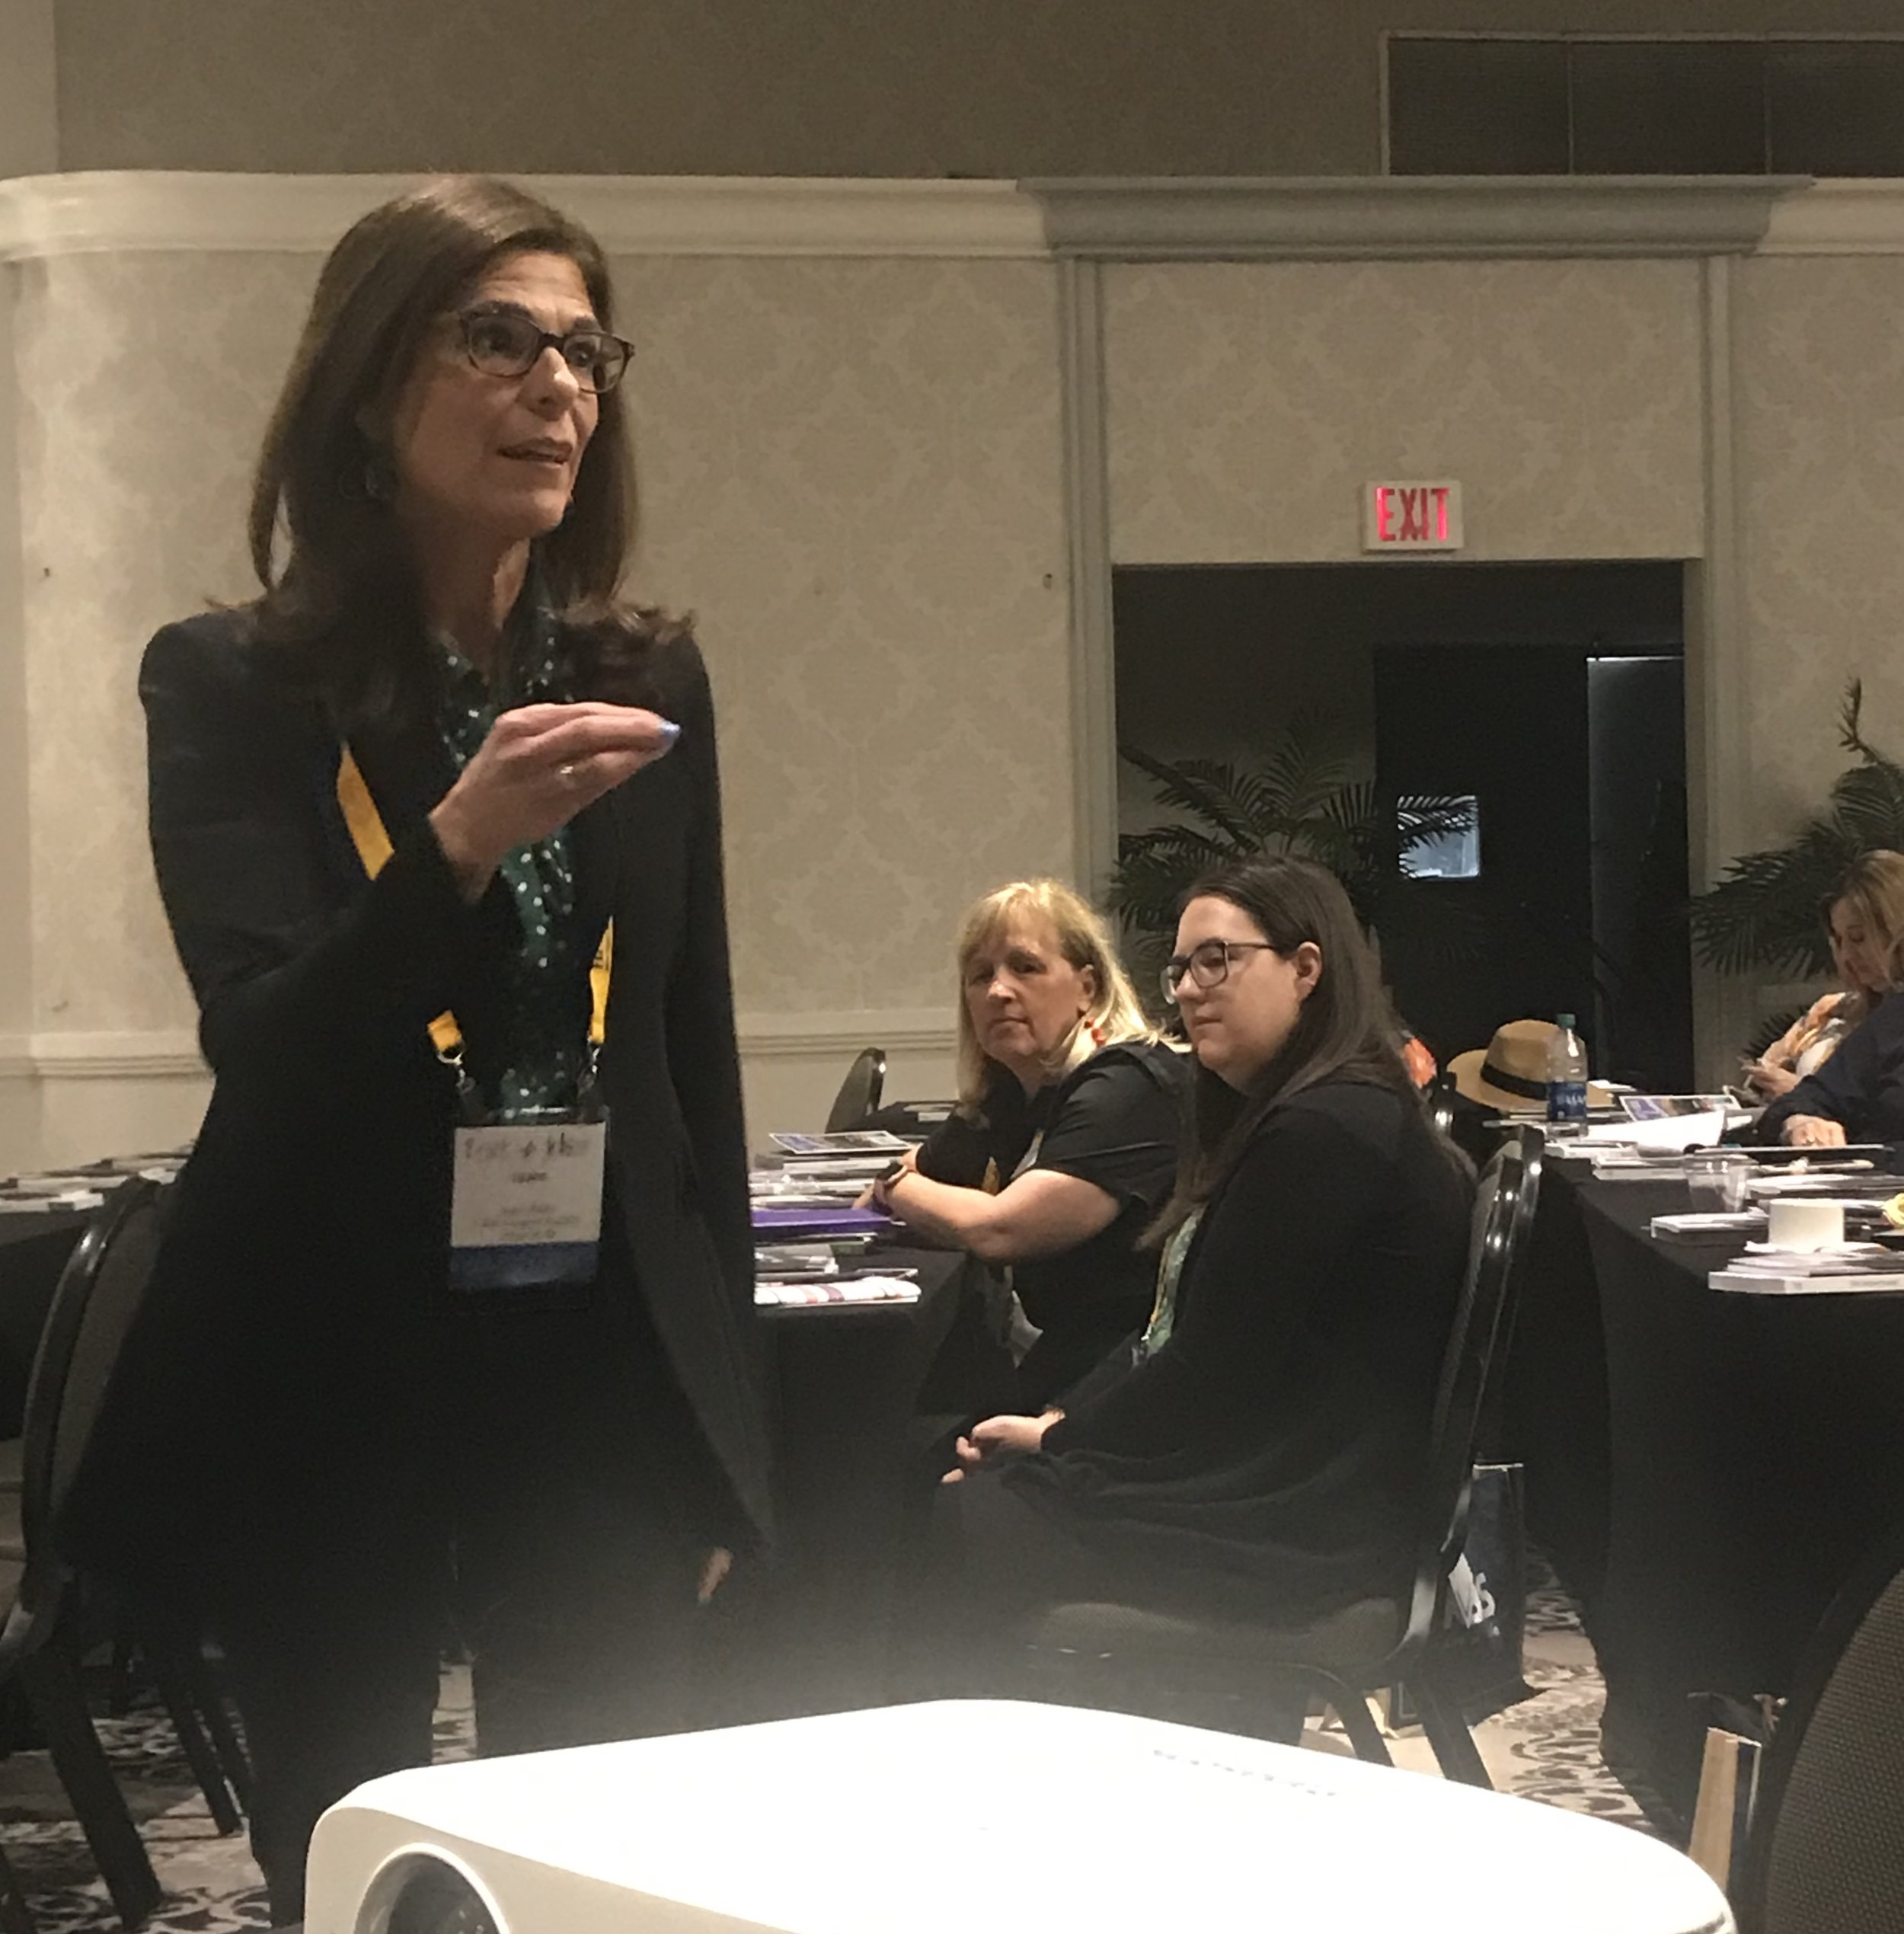 """LuAnn Nigara distributed copies of her books to all attendees. She said, """"After 450 interviews, I am just getting how you are doing business and no one does it alike."""" She urged designers to be upfront with clients from the start and to not be afraid of feedback at the end."""